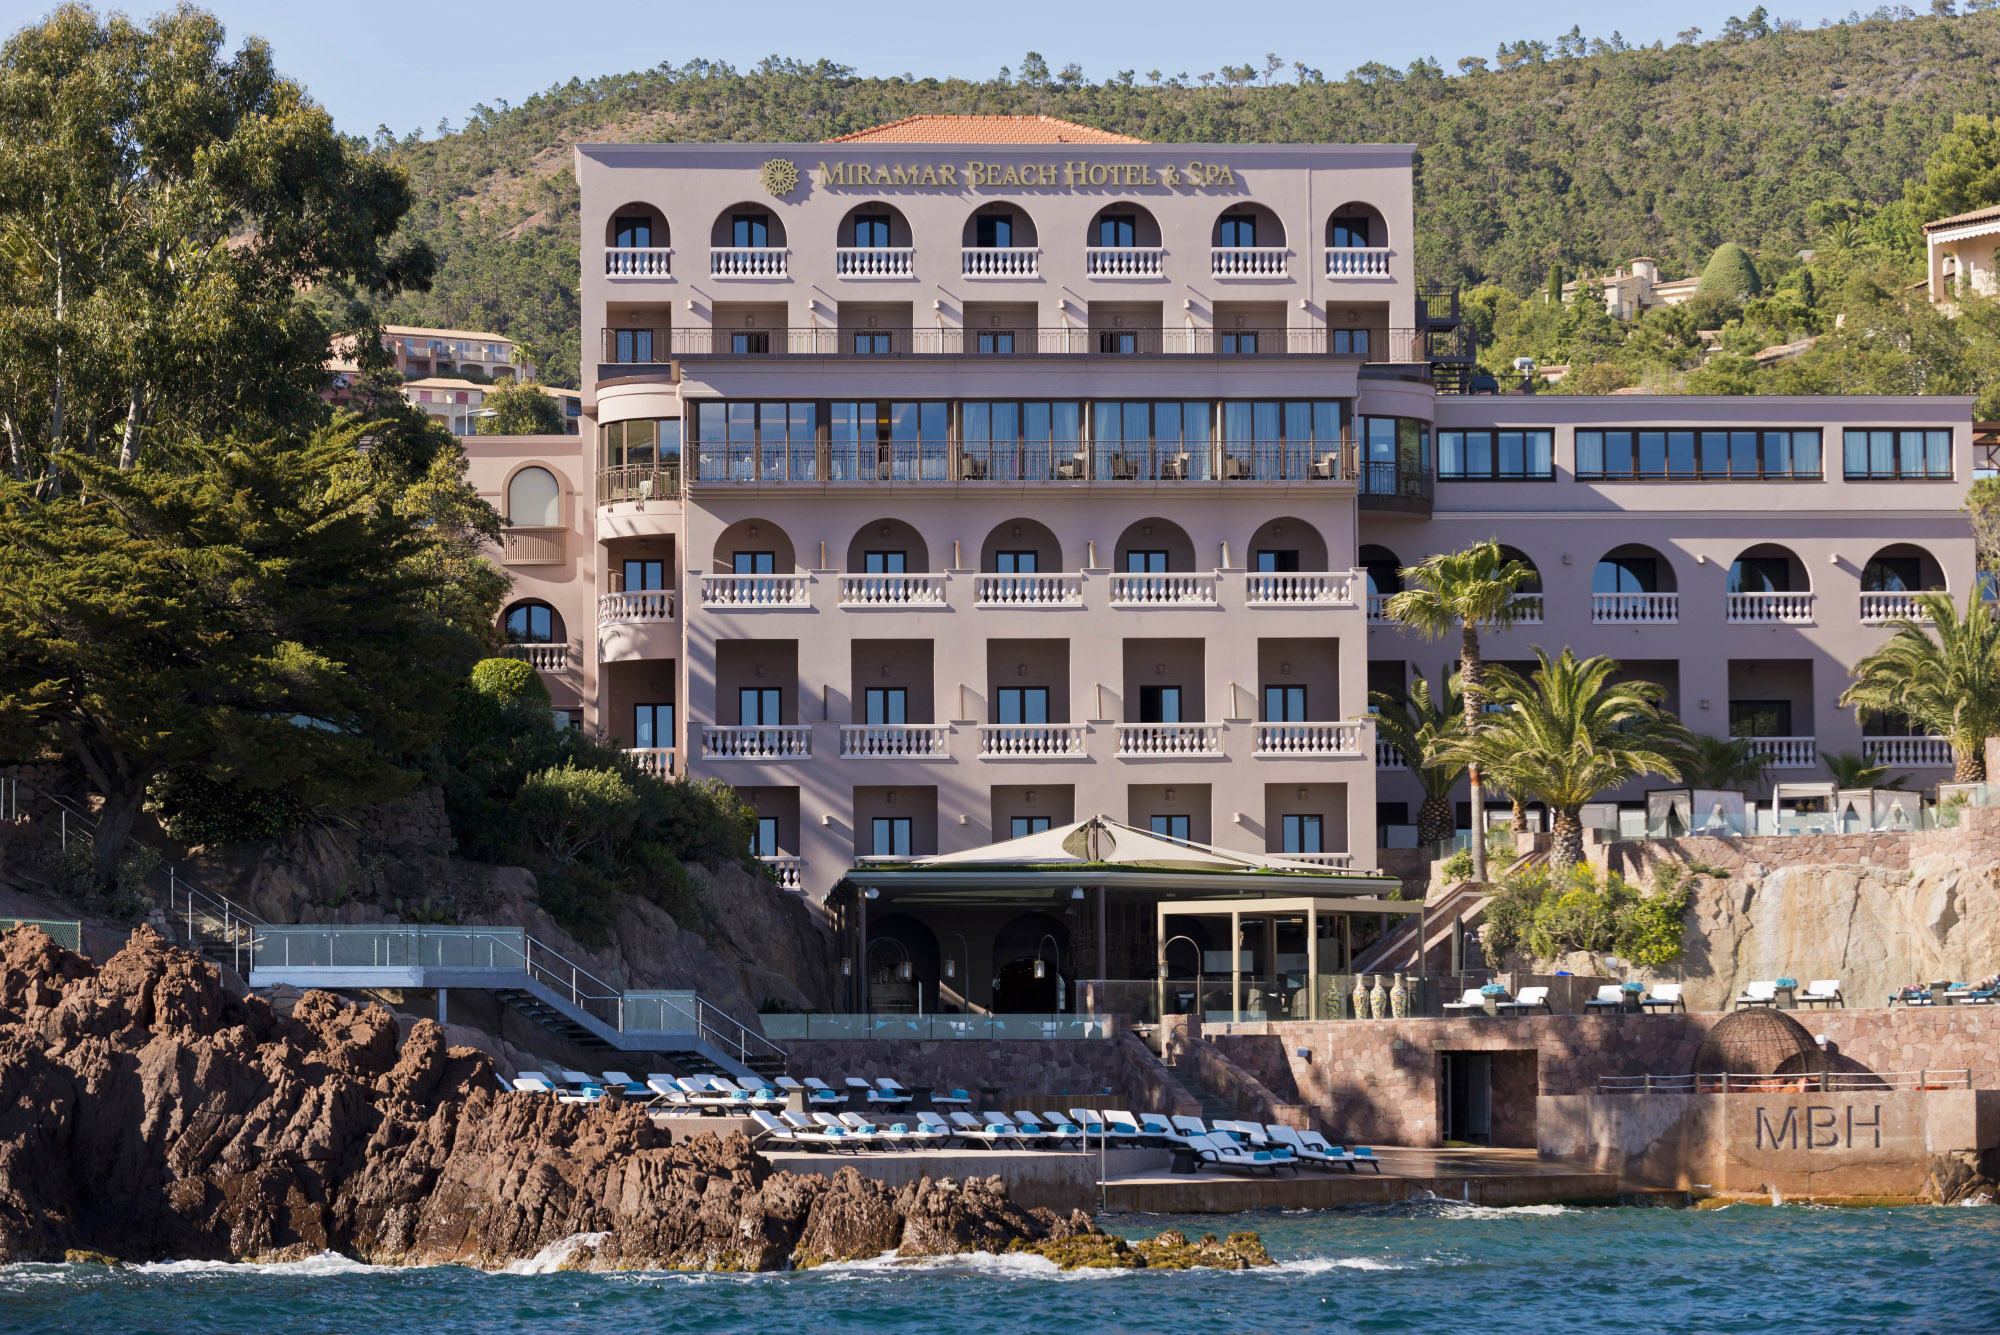 Miramar Beach Hôtel & Spa - MIPCOM